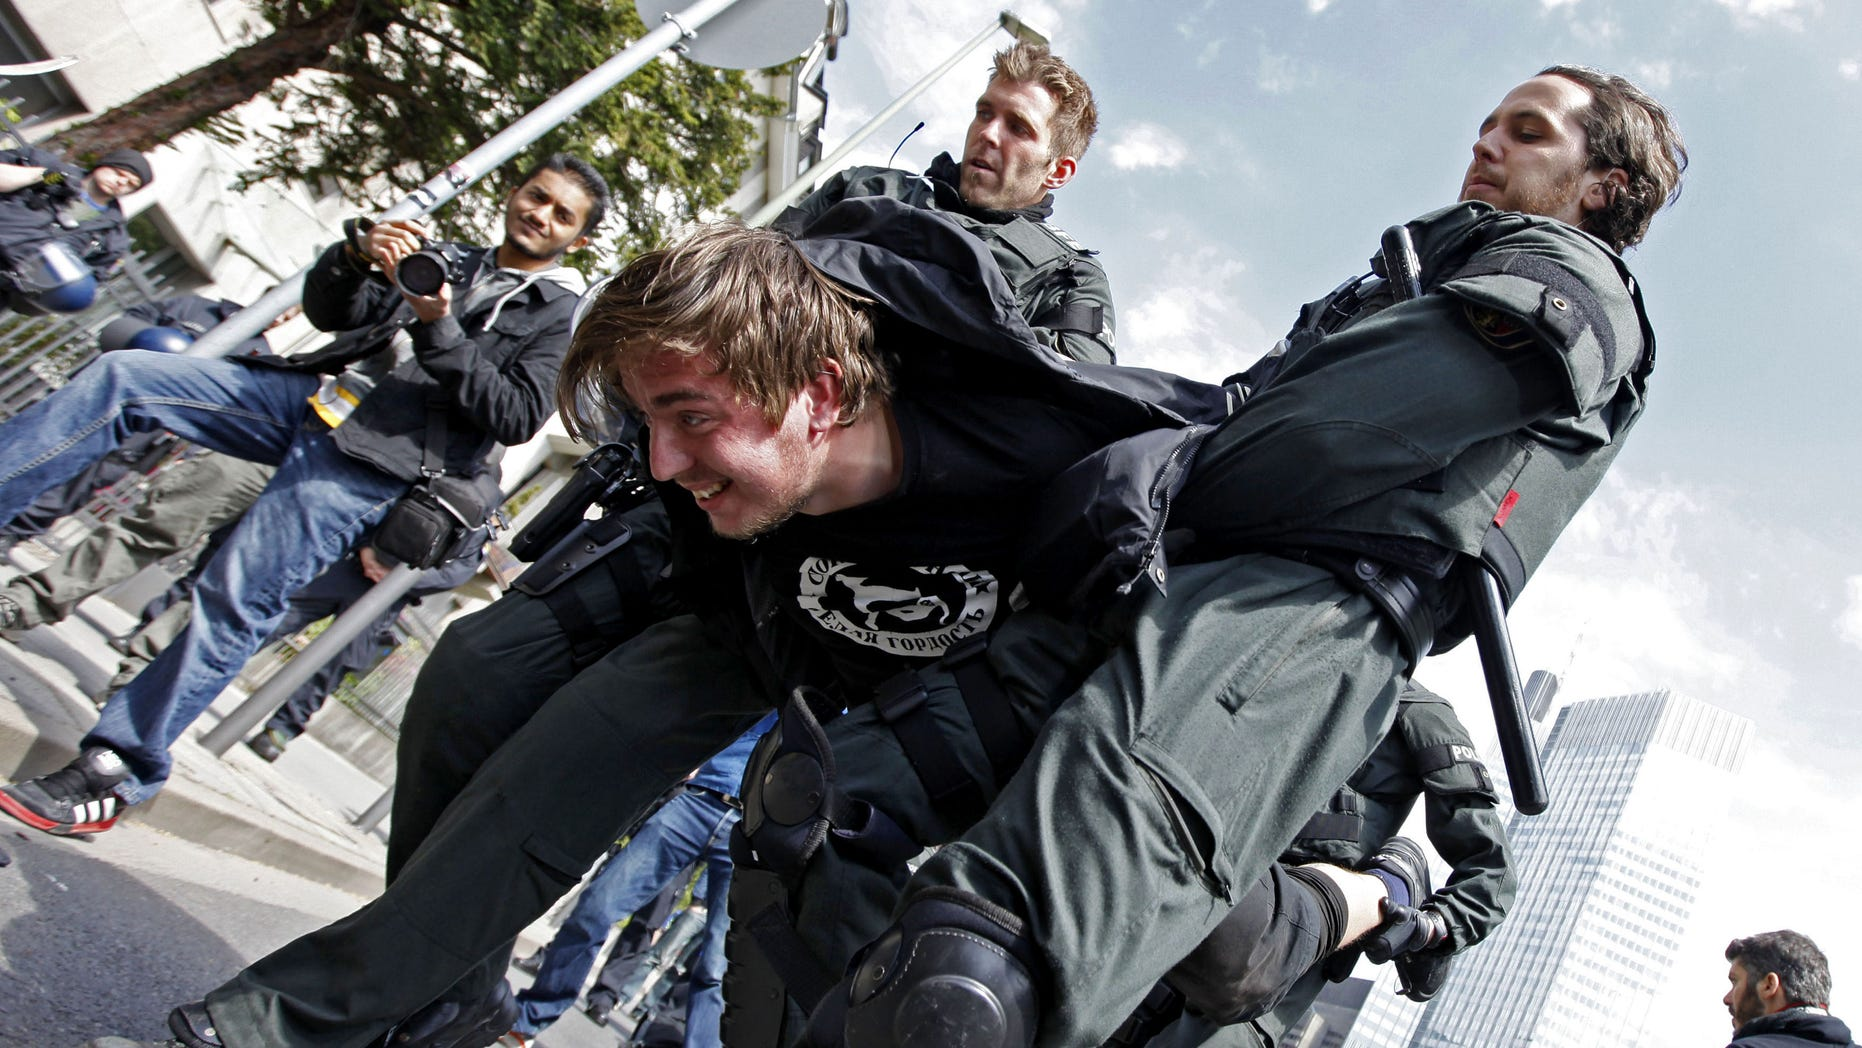 May 18, 2012: Police carry a protester away, after demonstrators had blocked a street  in Frankfurt, central Germany. Police in Germany have temporarily detained some 400 demonstrators during largely peaceful protests by Occupy activists.